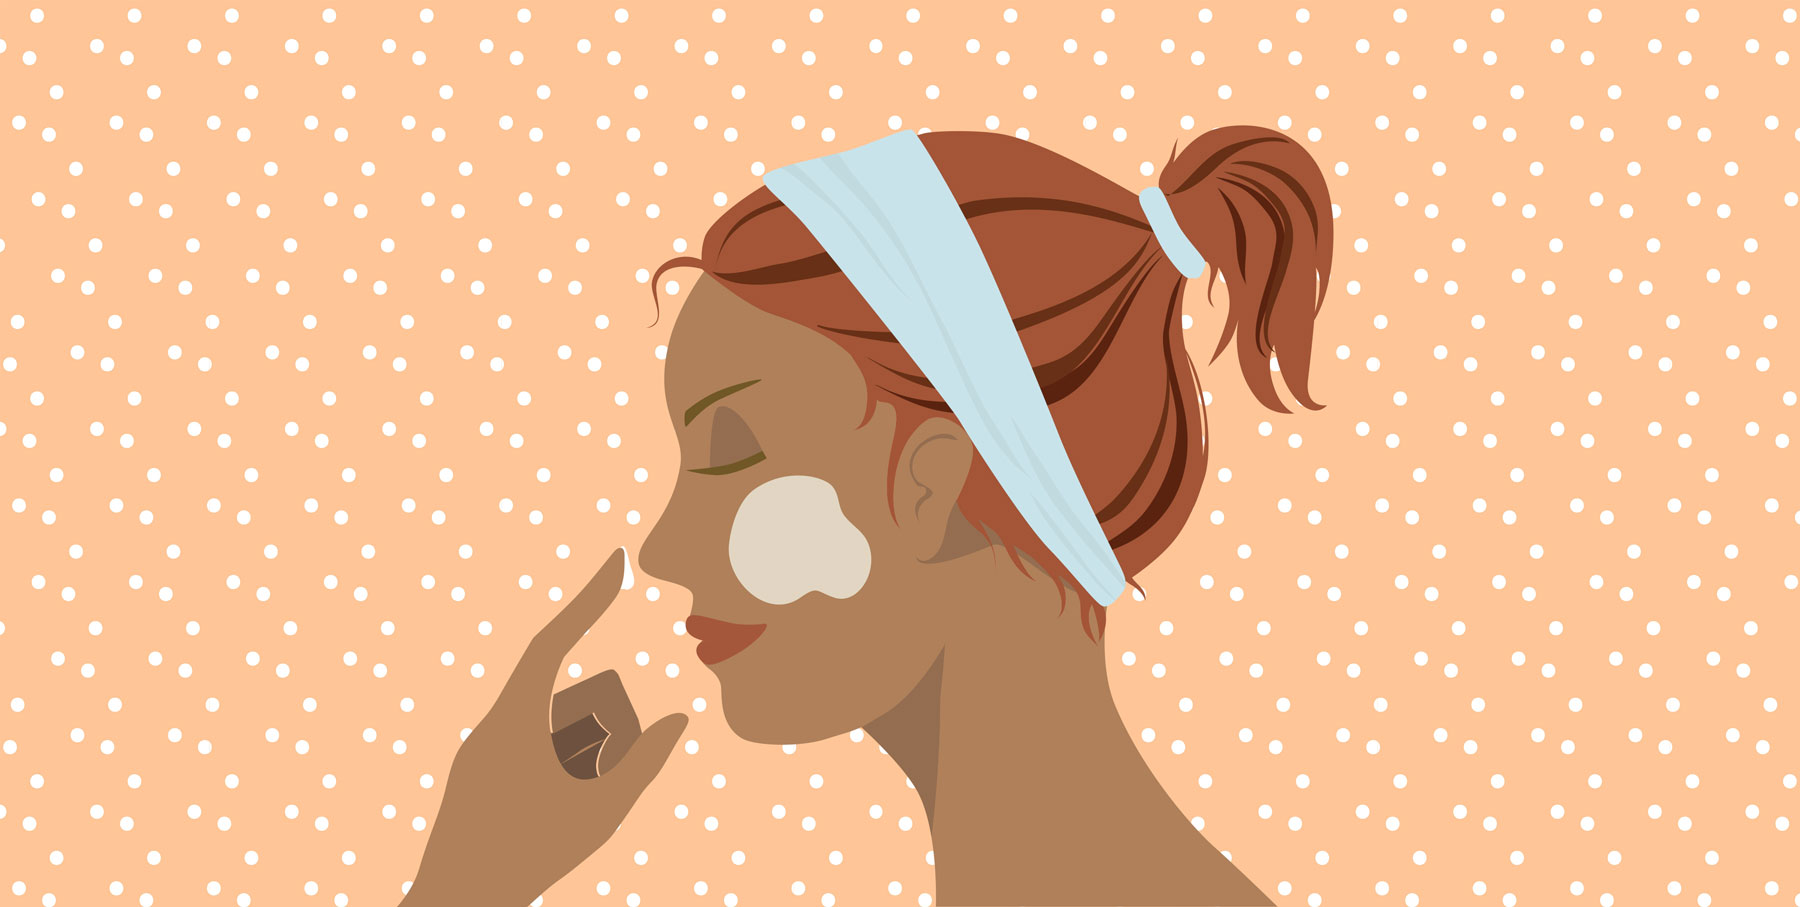 How to shrink pores - how to shrink, minimize, or reduce pore size